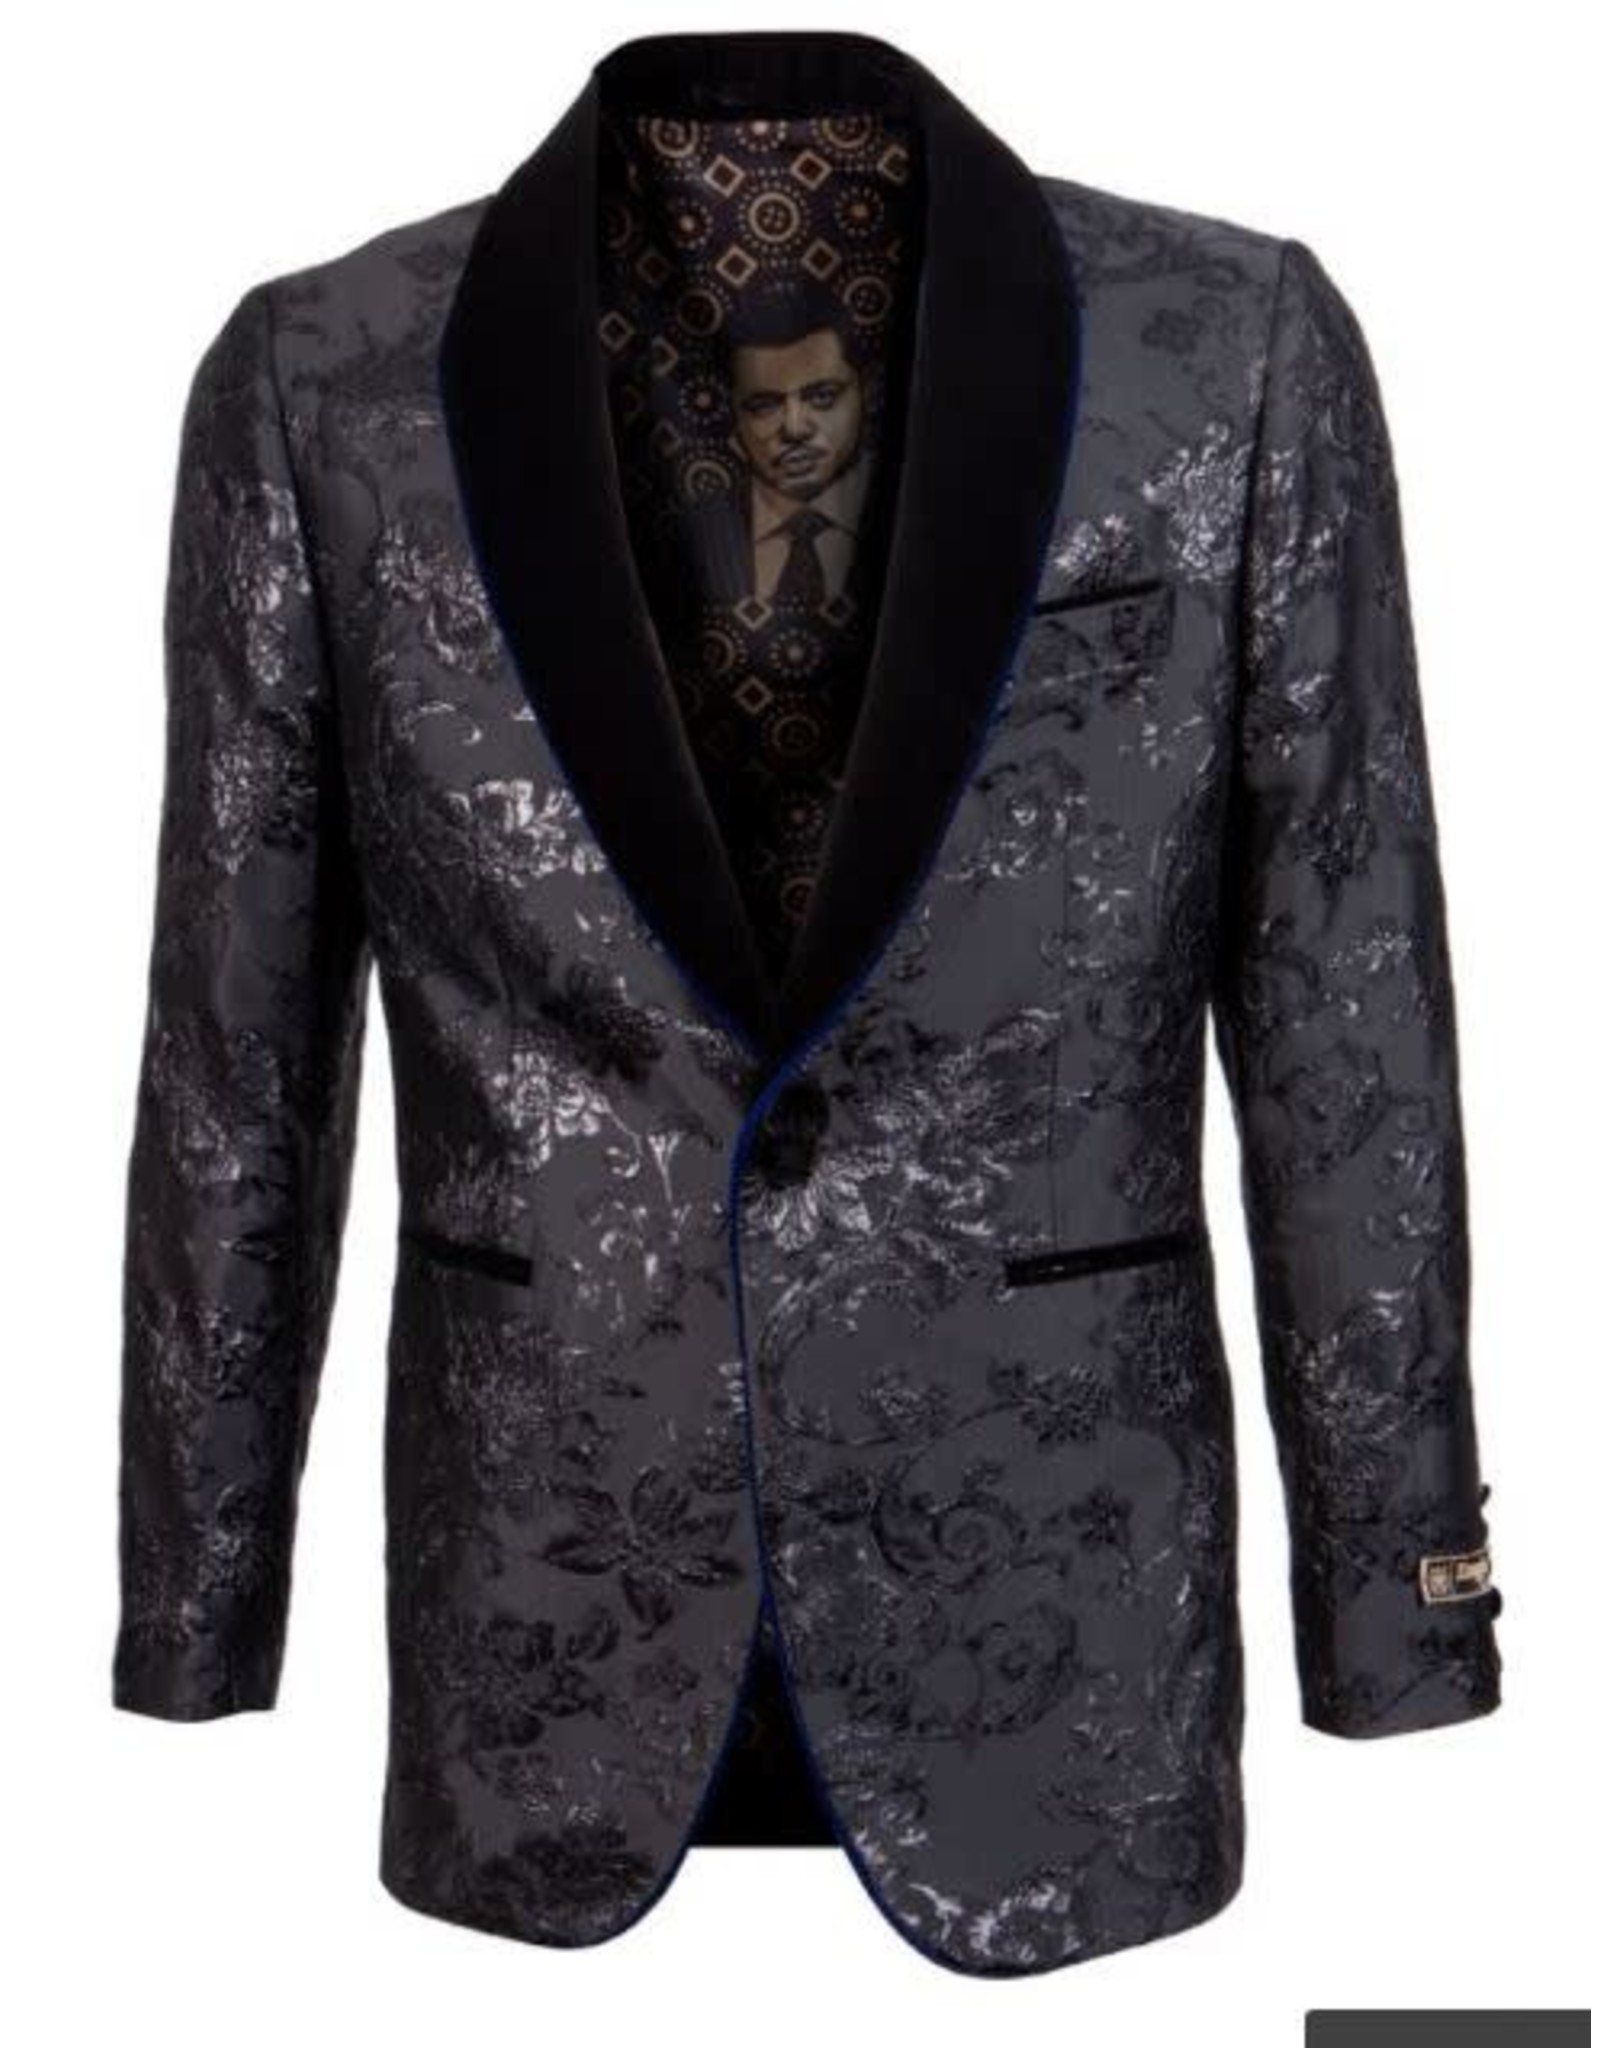 Empire Empire Blazer - ME276H02 Black/Royal